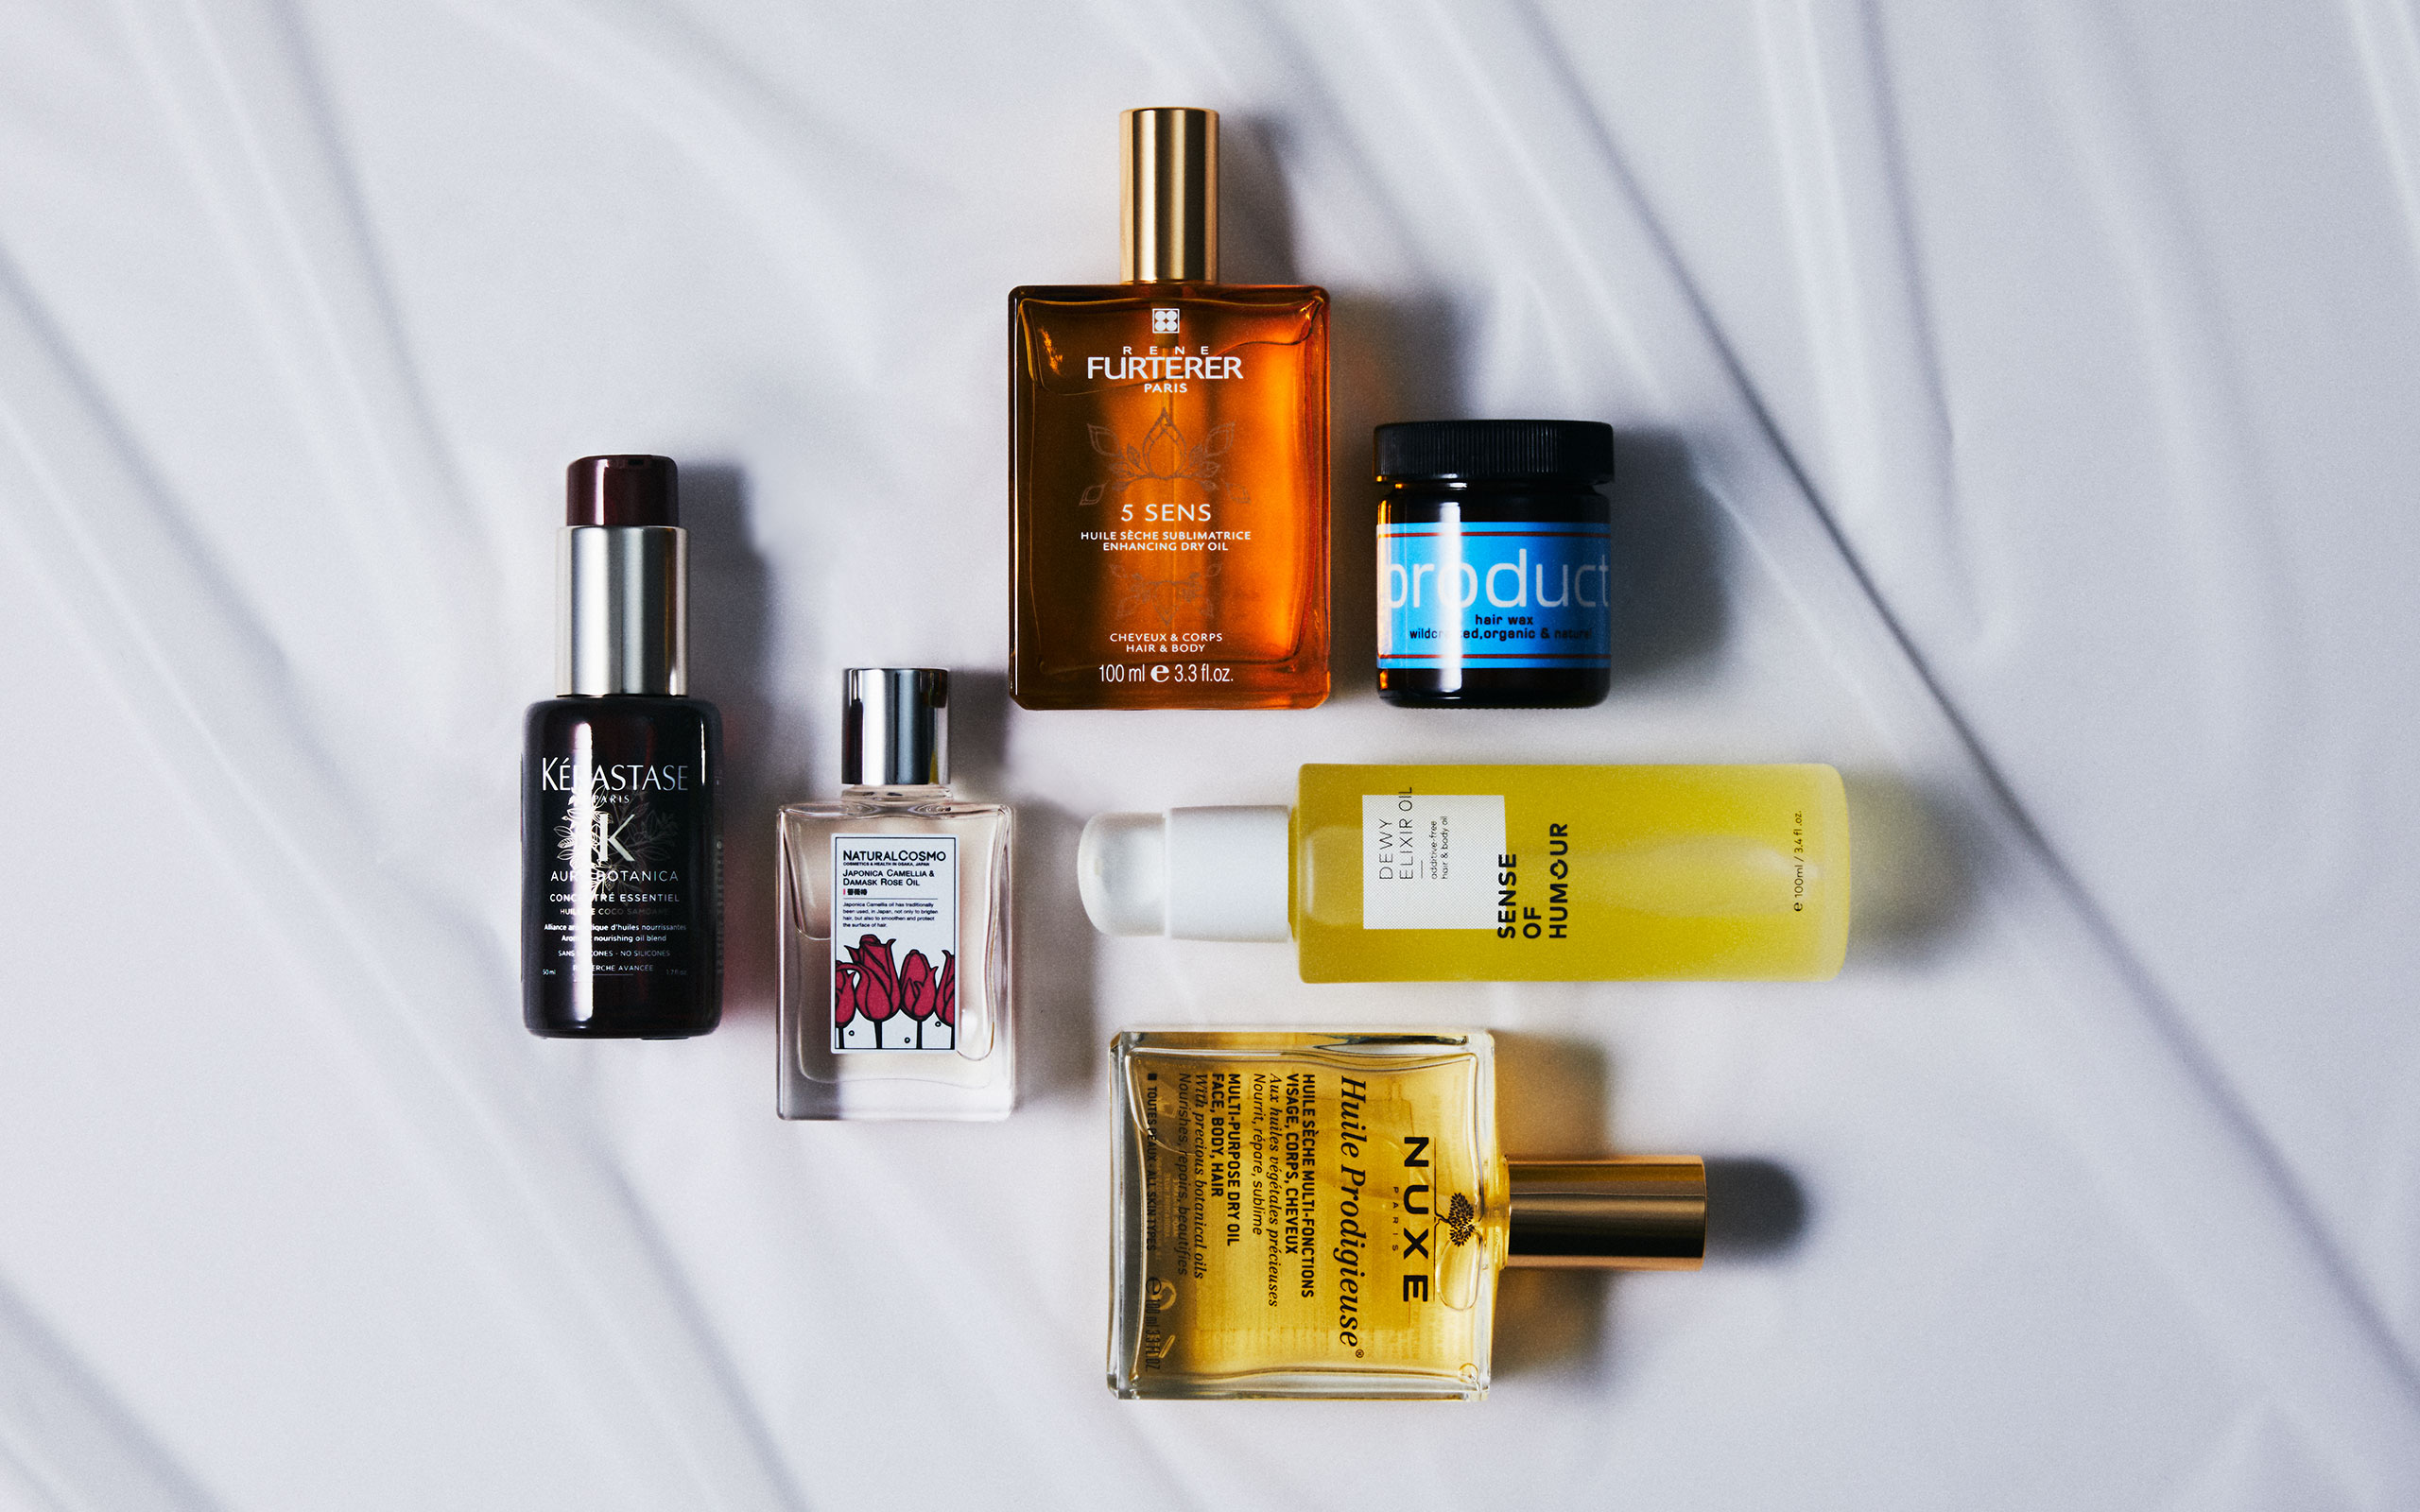 The Pick #5 The Best Hair & Body Oils & Wax